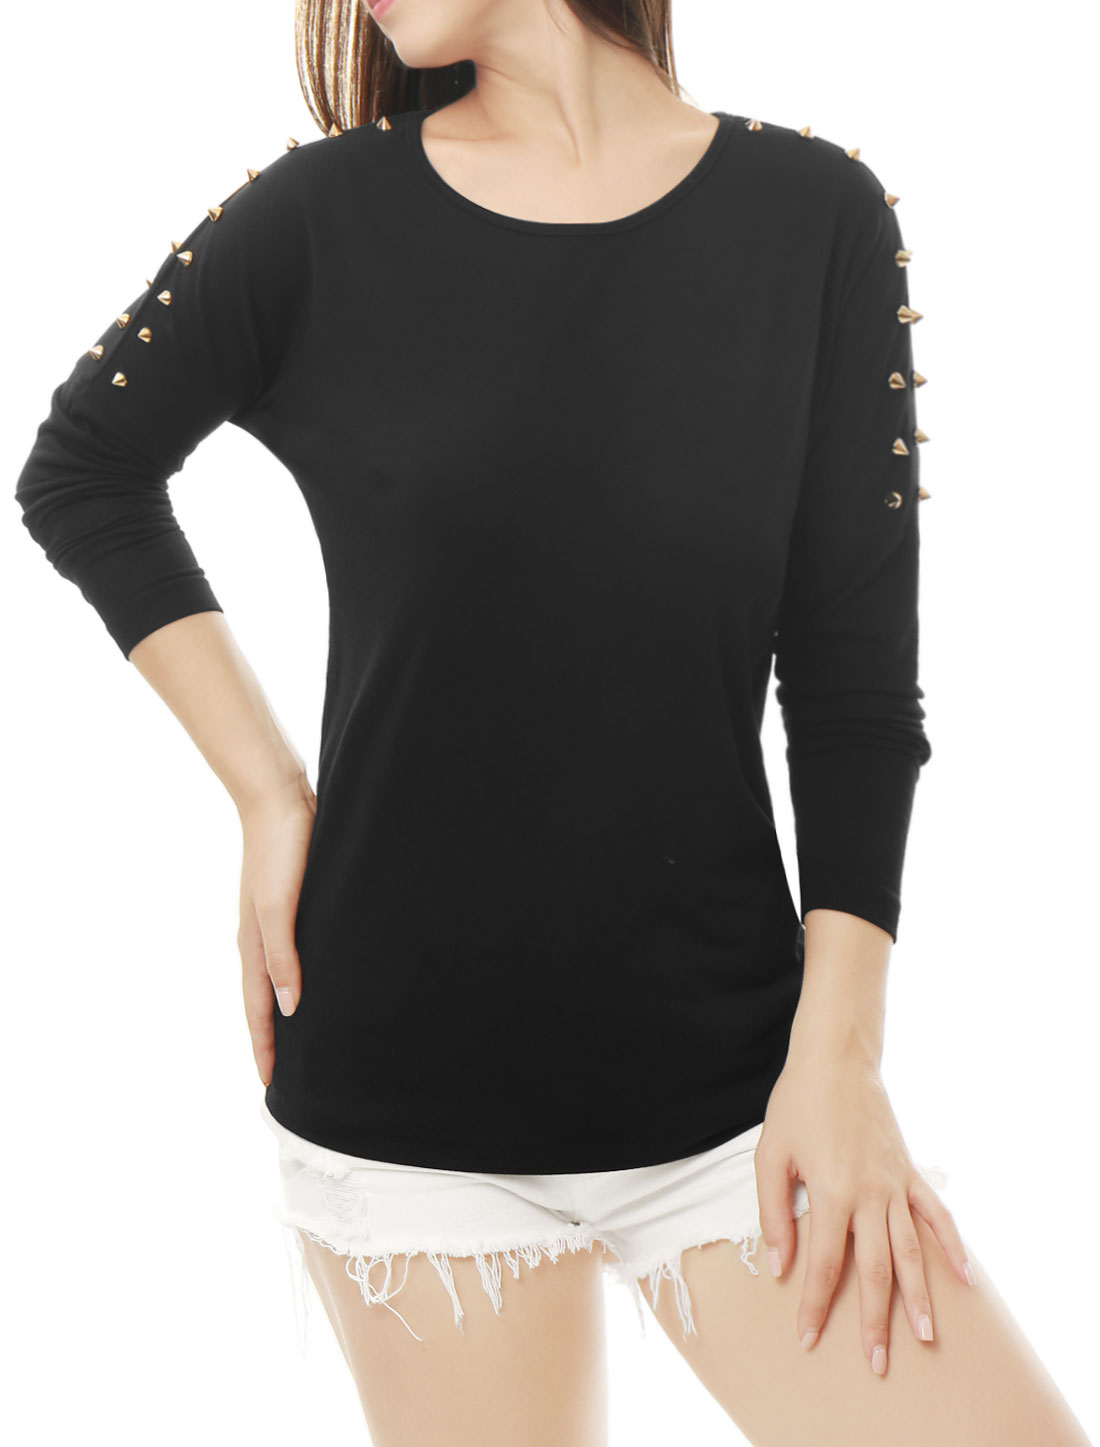 Women Round Neck Studs Embellished Dolman Sleeves Top Black M